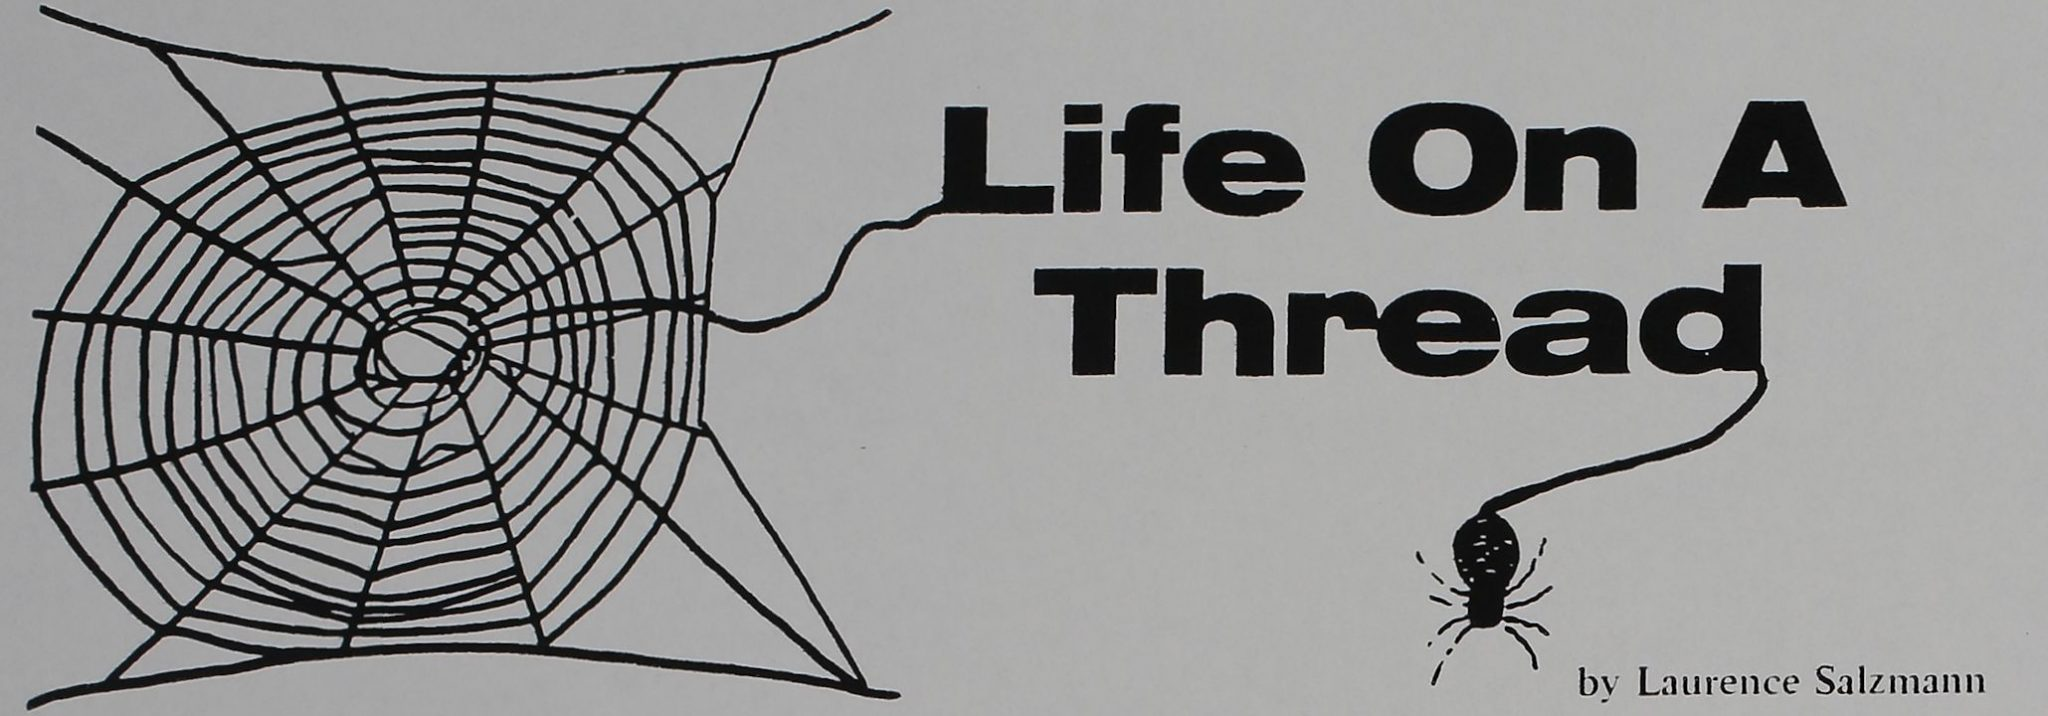 Life on a Thread - Filmmakers Newsletter